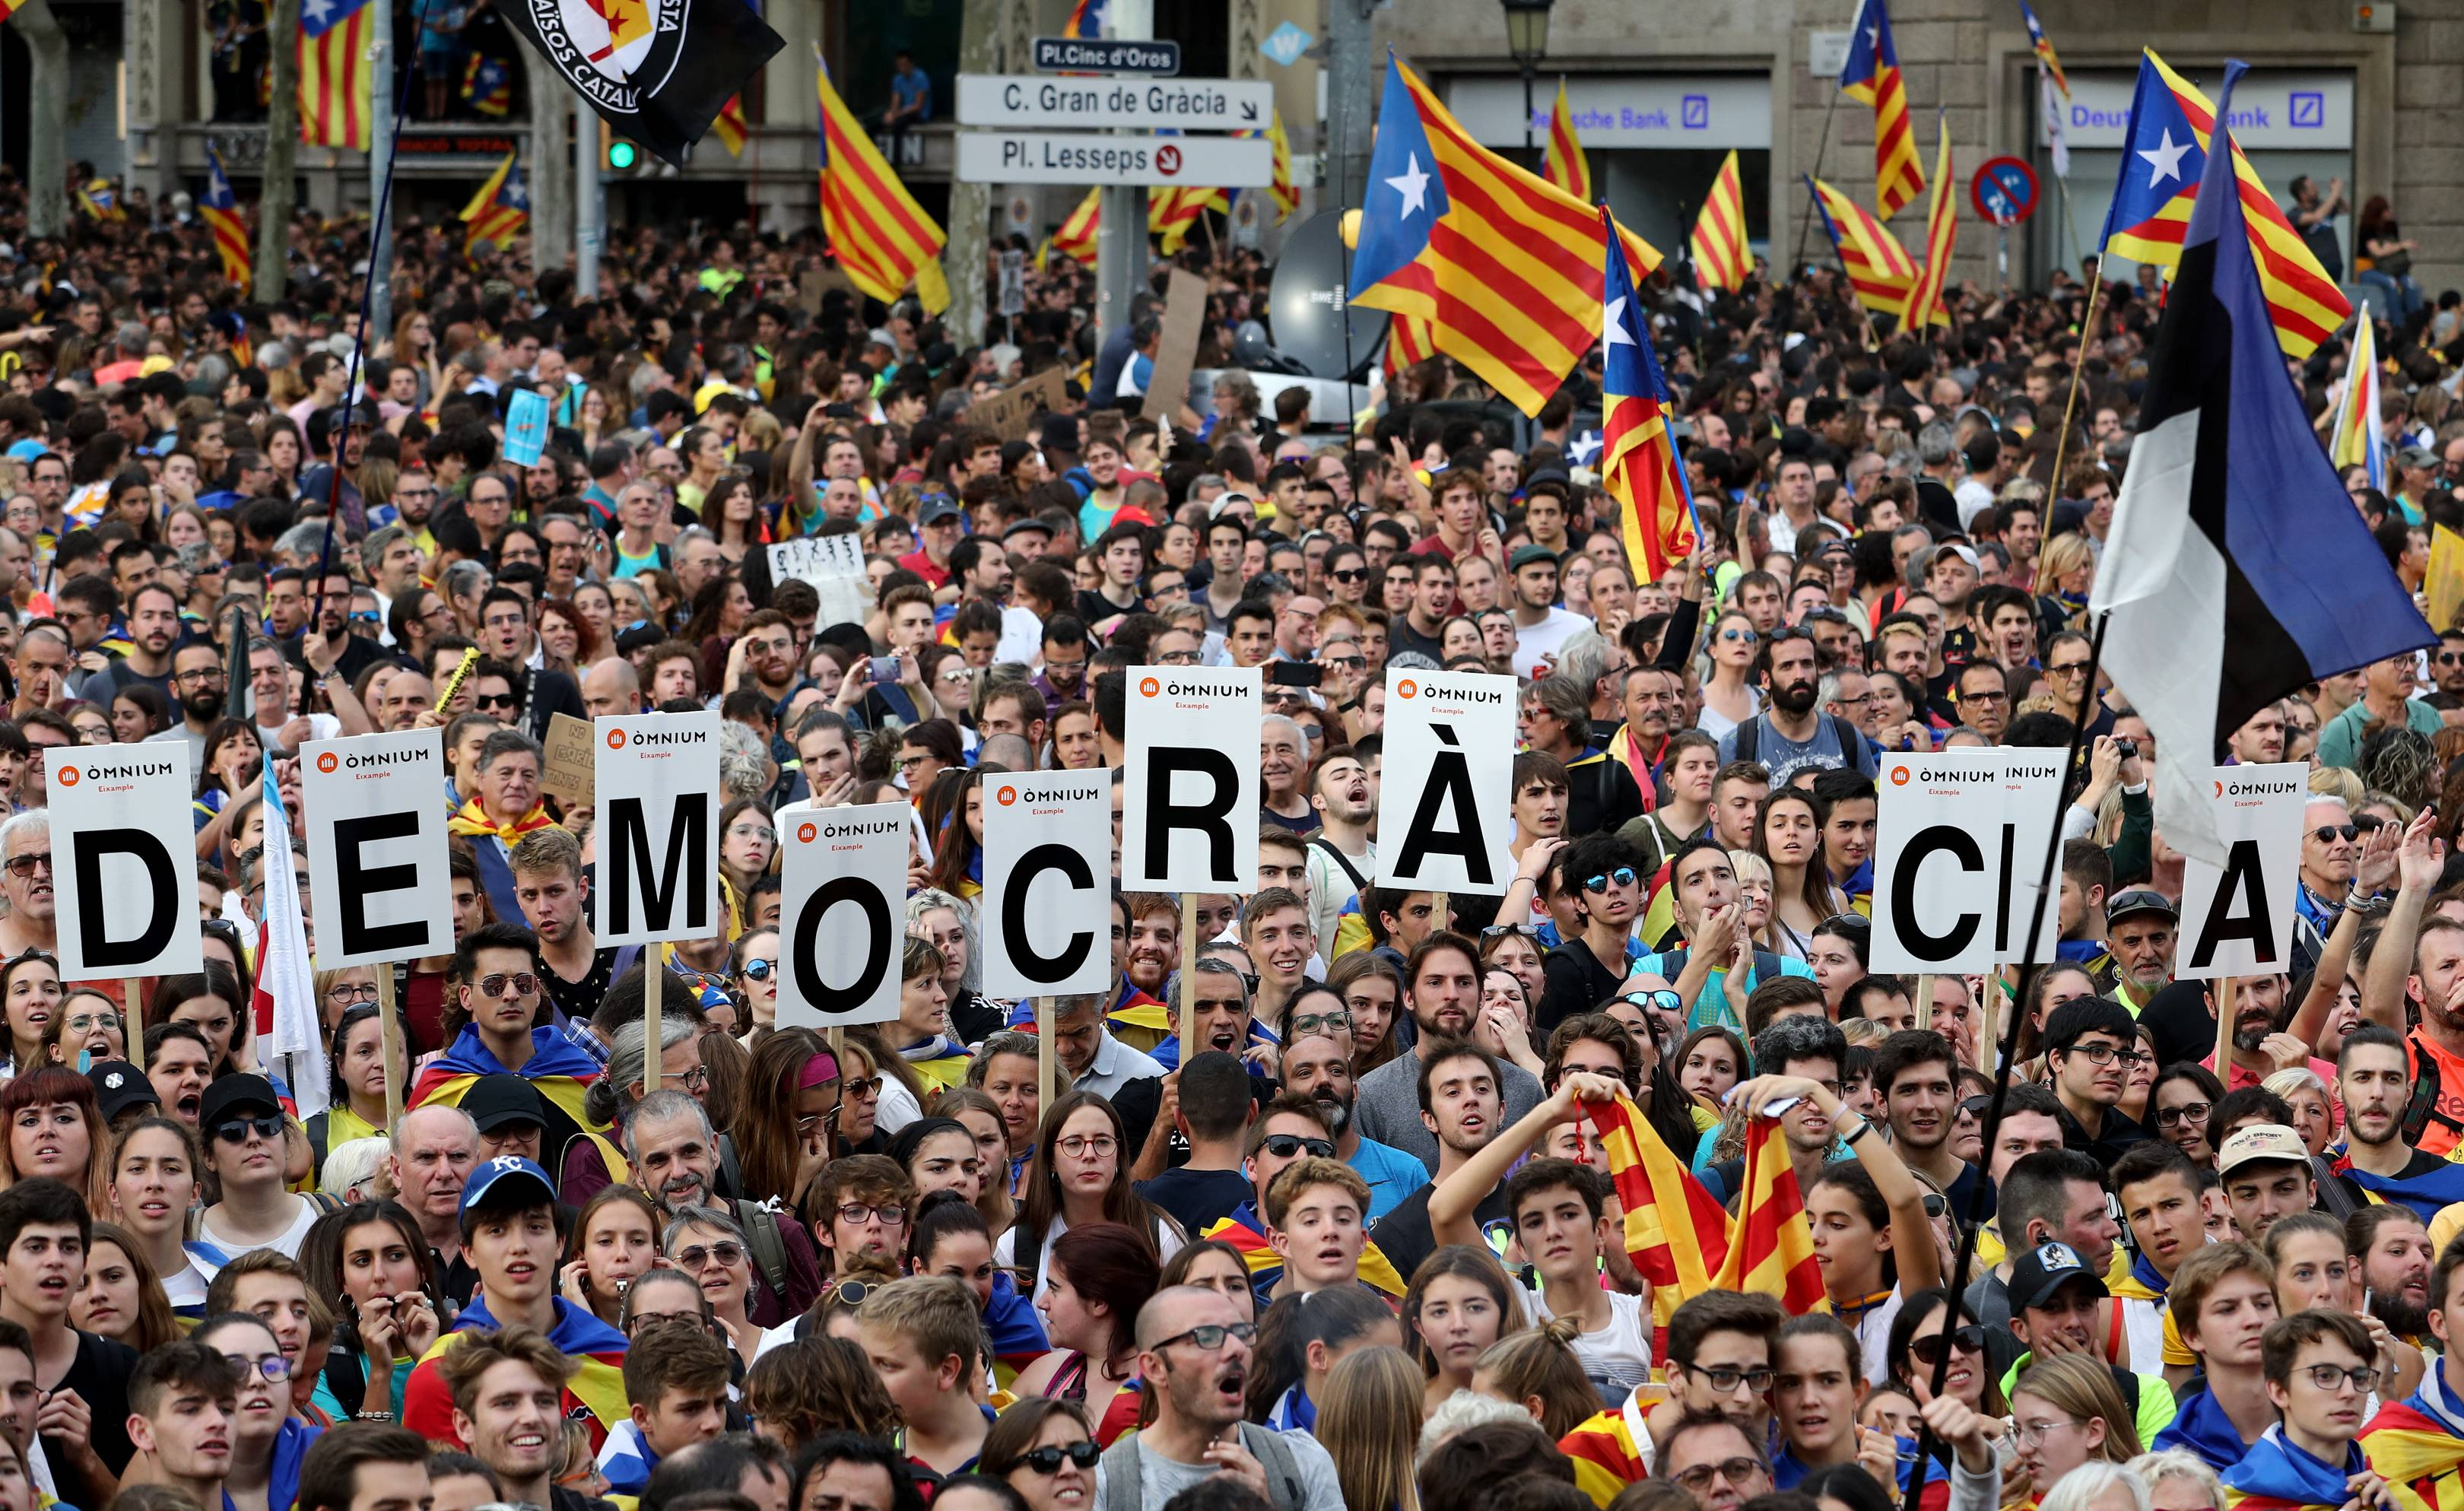 Catalonia has created a new kind of online activism. Everyone should pay attention